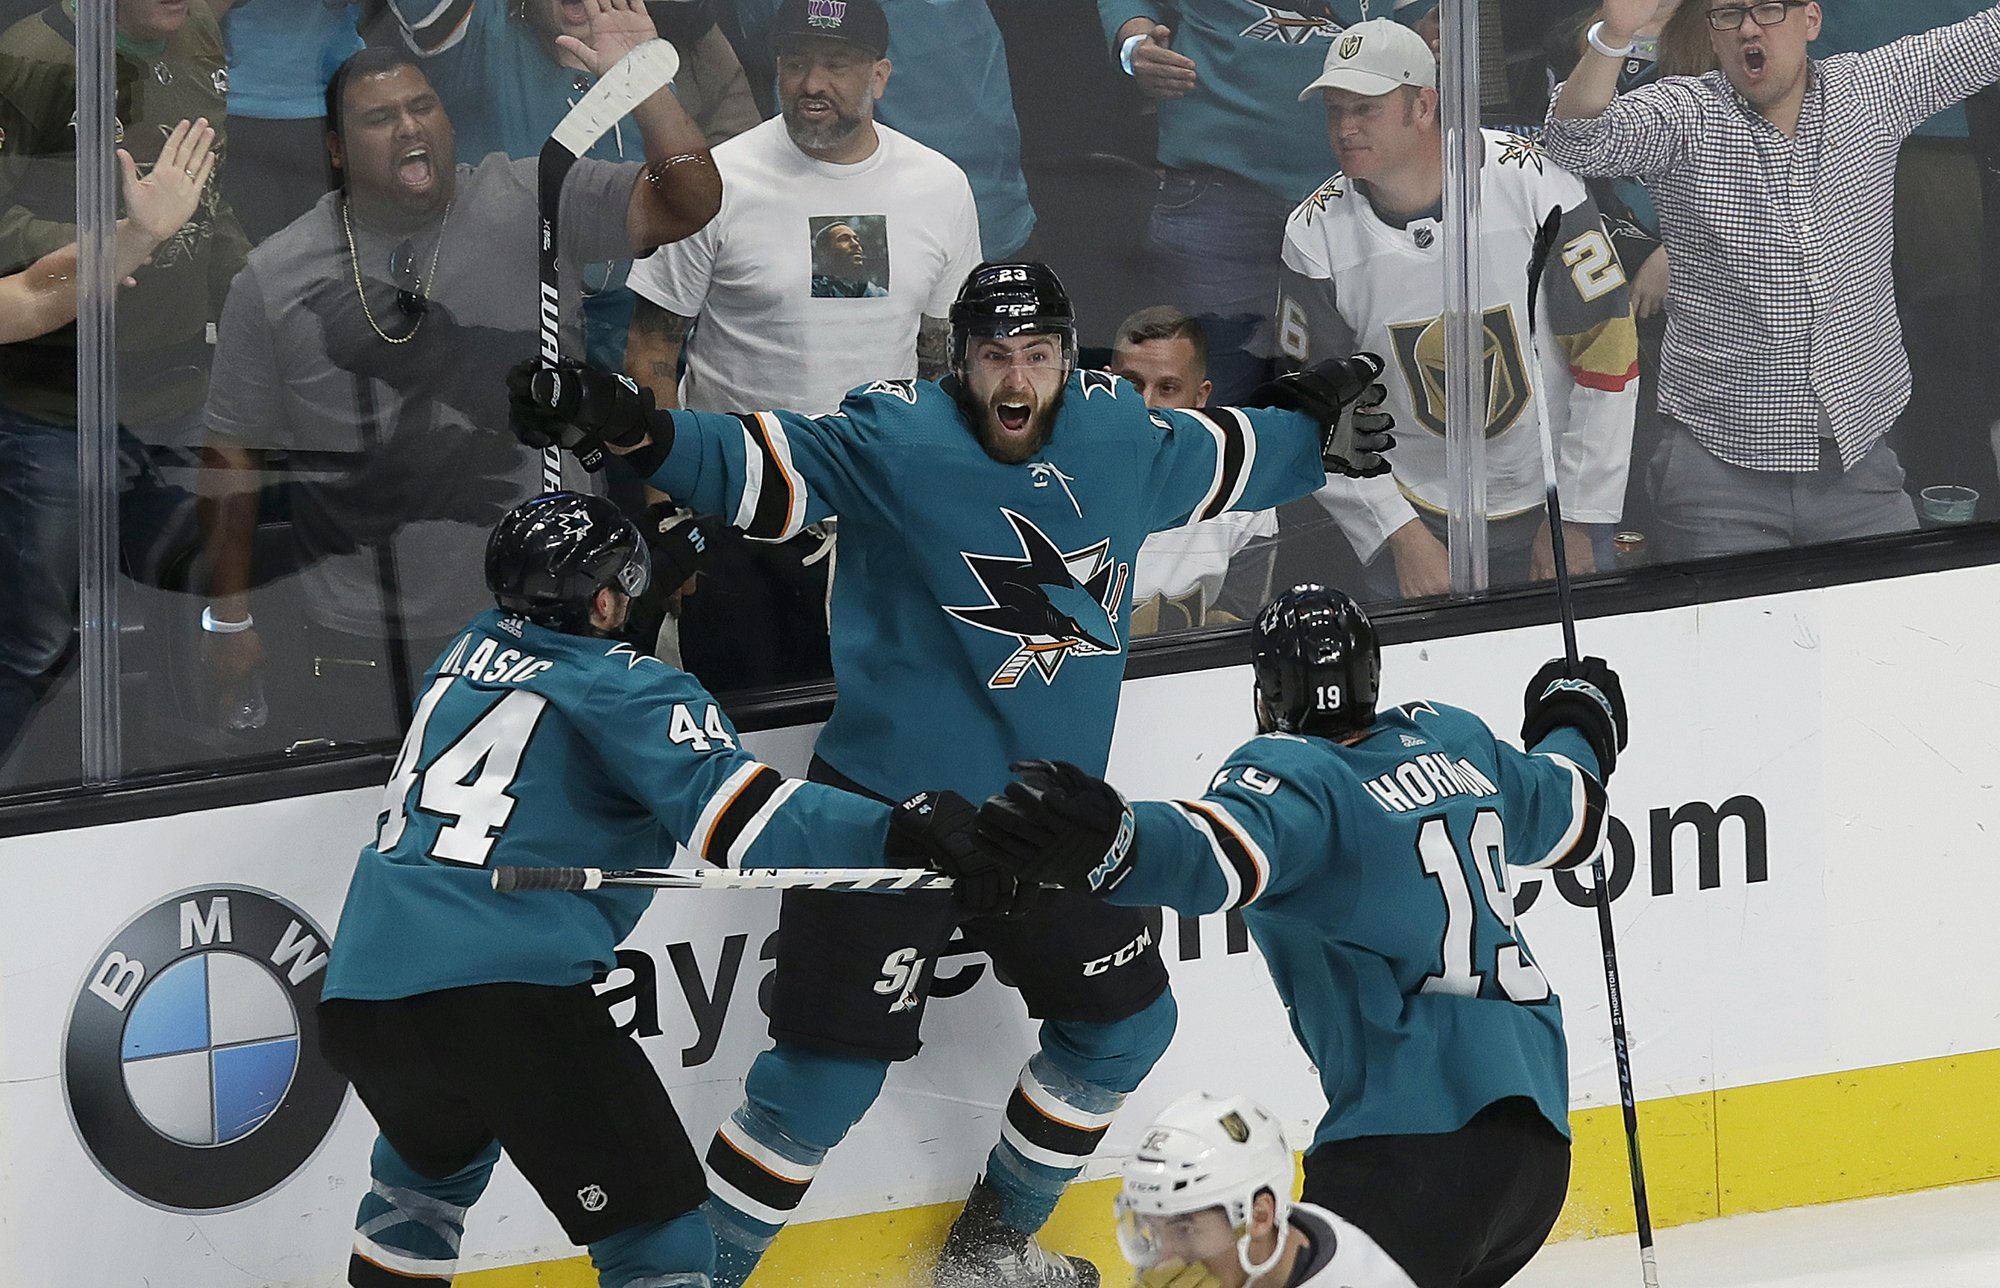 San Jose Sharks win vs Knights_1556226909131.jpeg.jpg